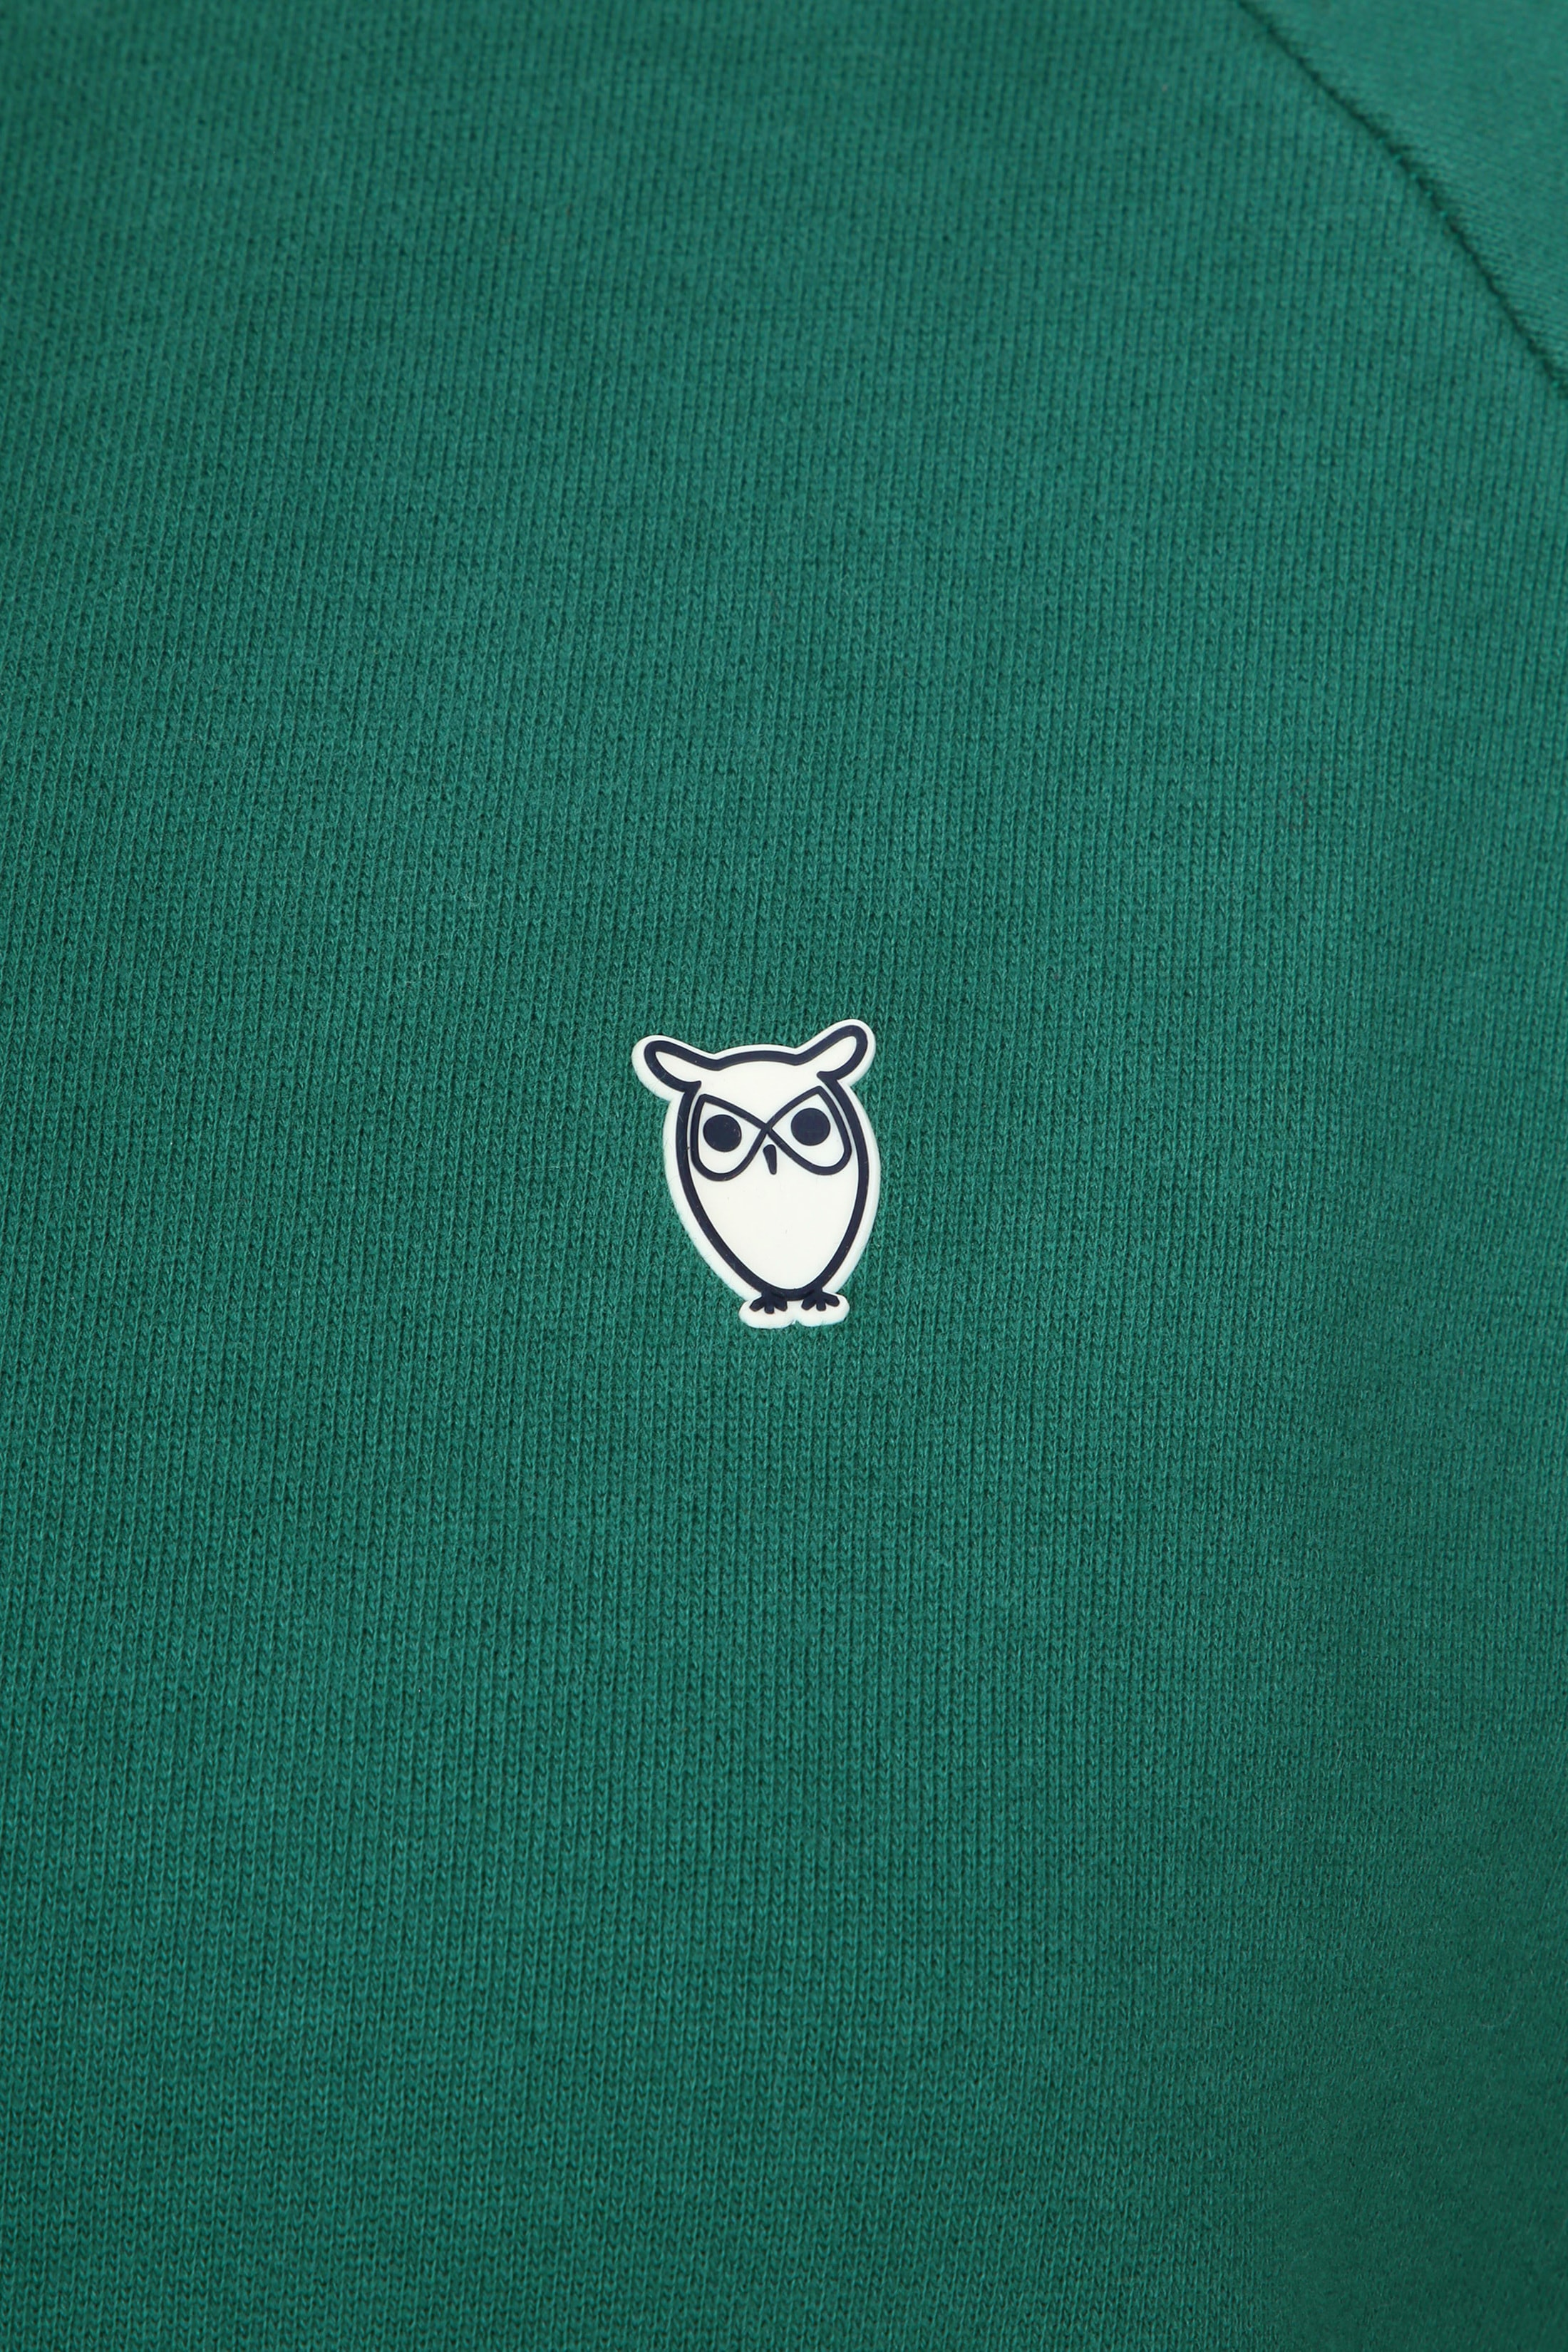 Knowledge Cotton Apparel Trui Groen foto 1